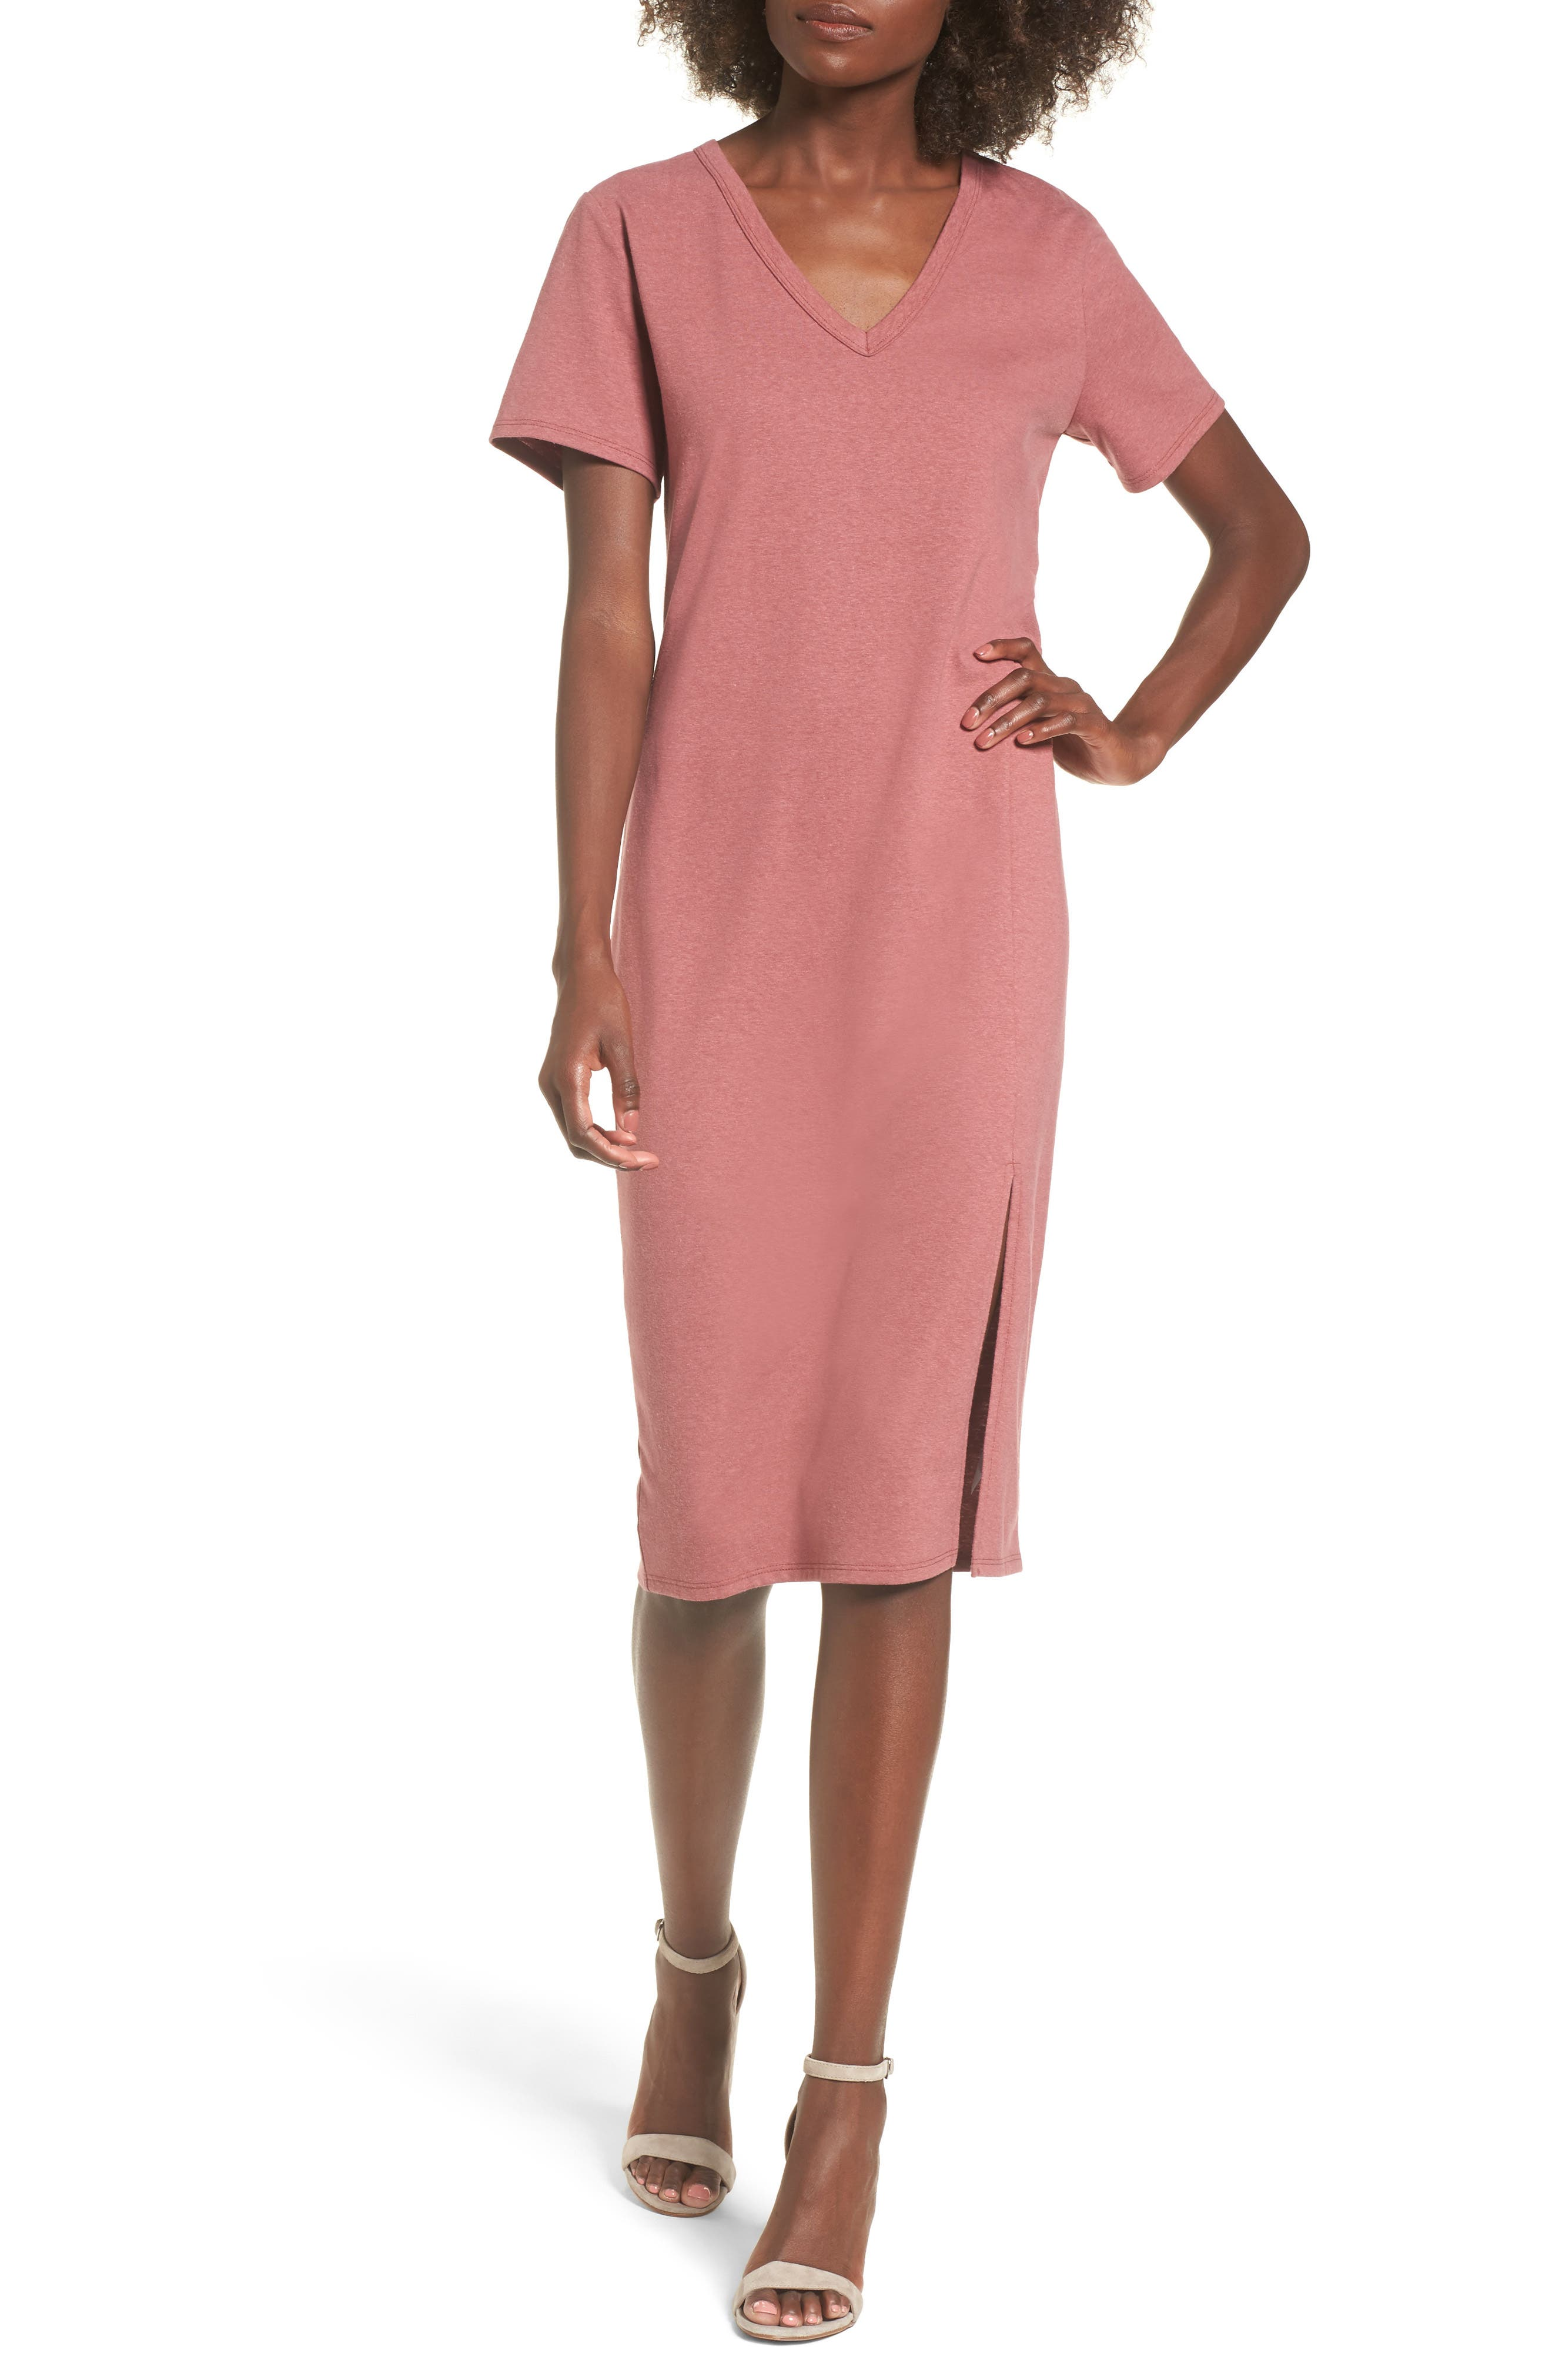 Main Image - Socialite Knee Length T-Shirt Dress